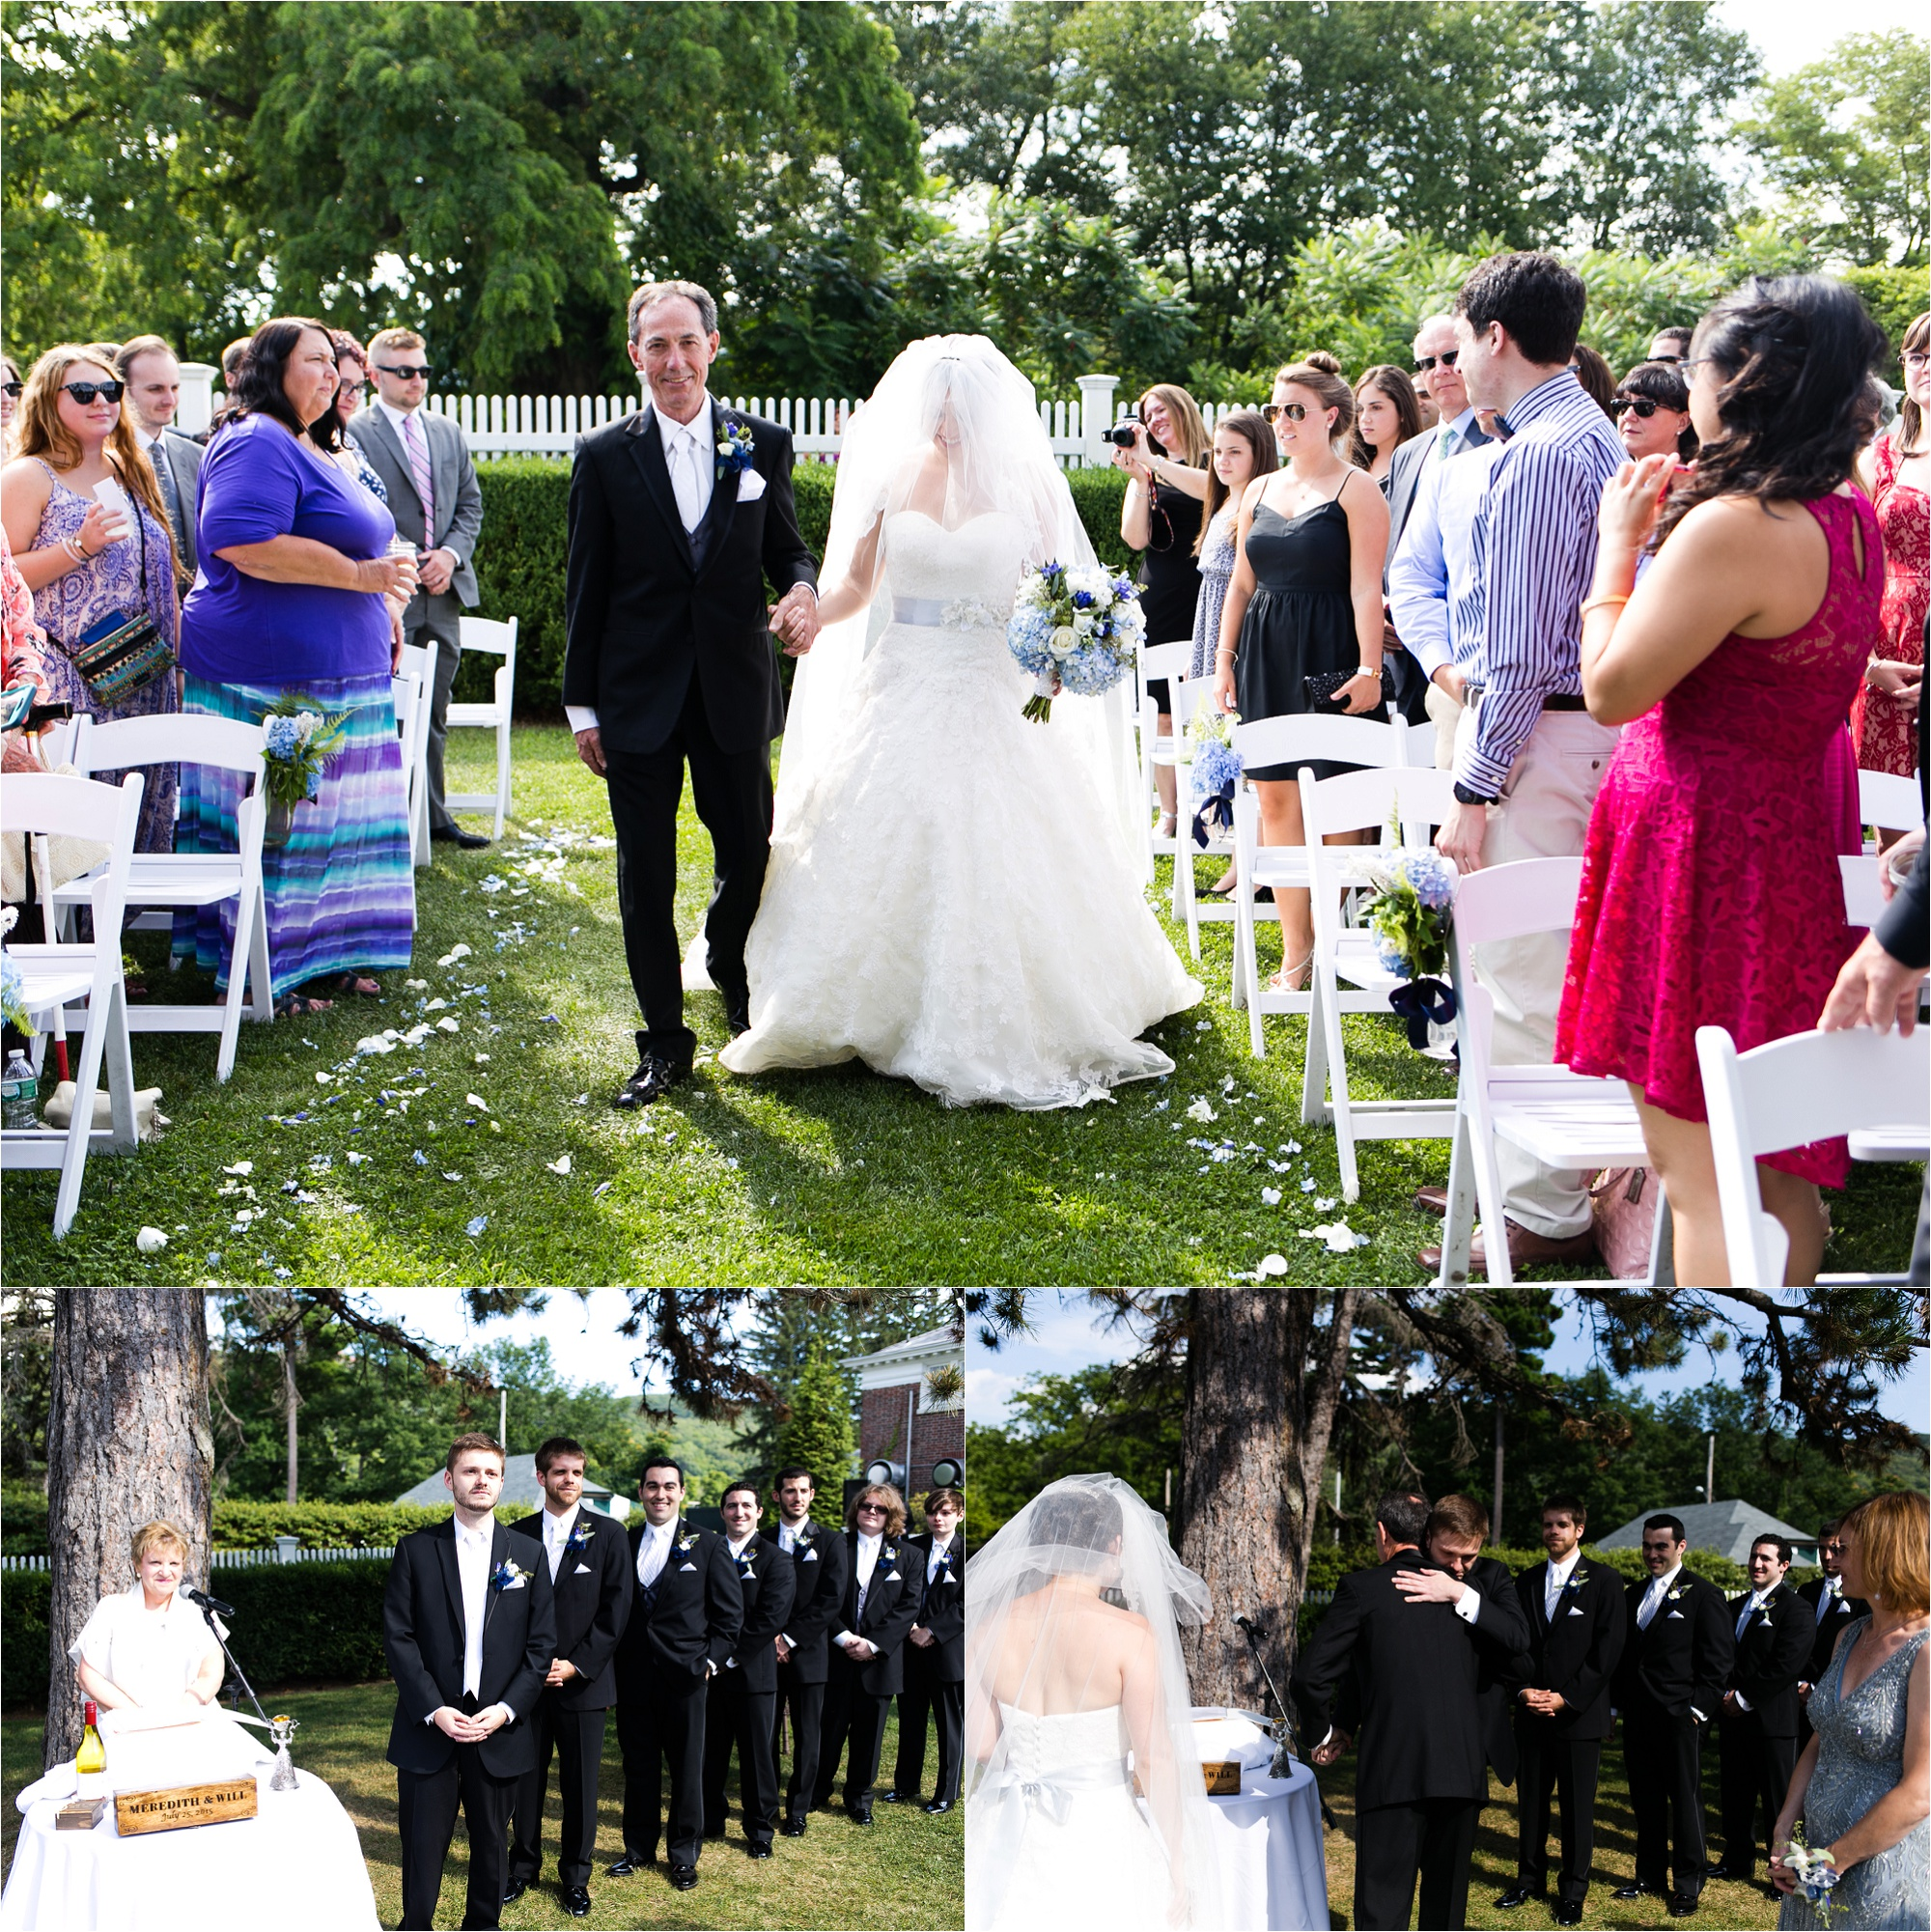 Highlands Country Club is a gorgeous venue for an outdoor wedding ceremony